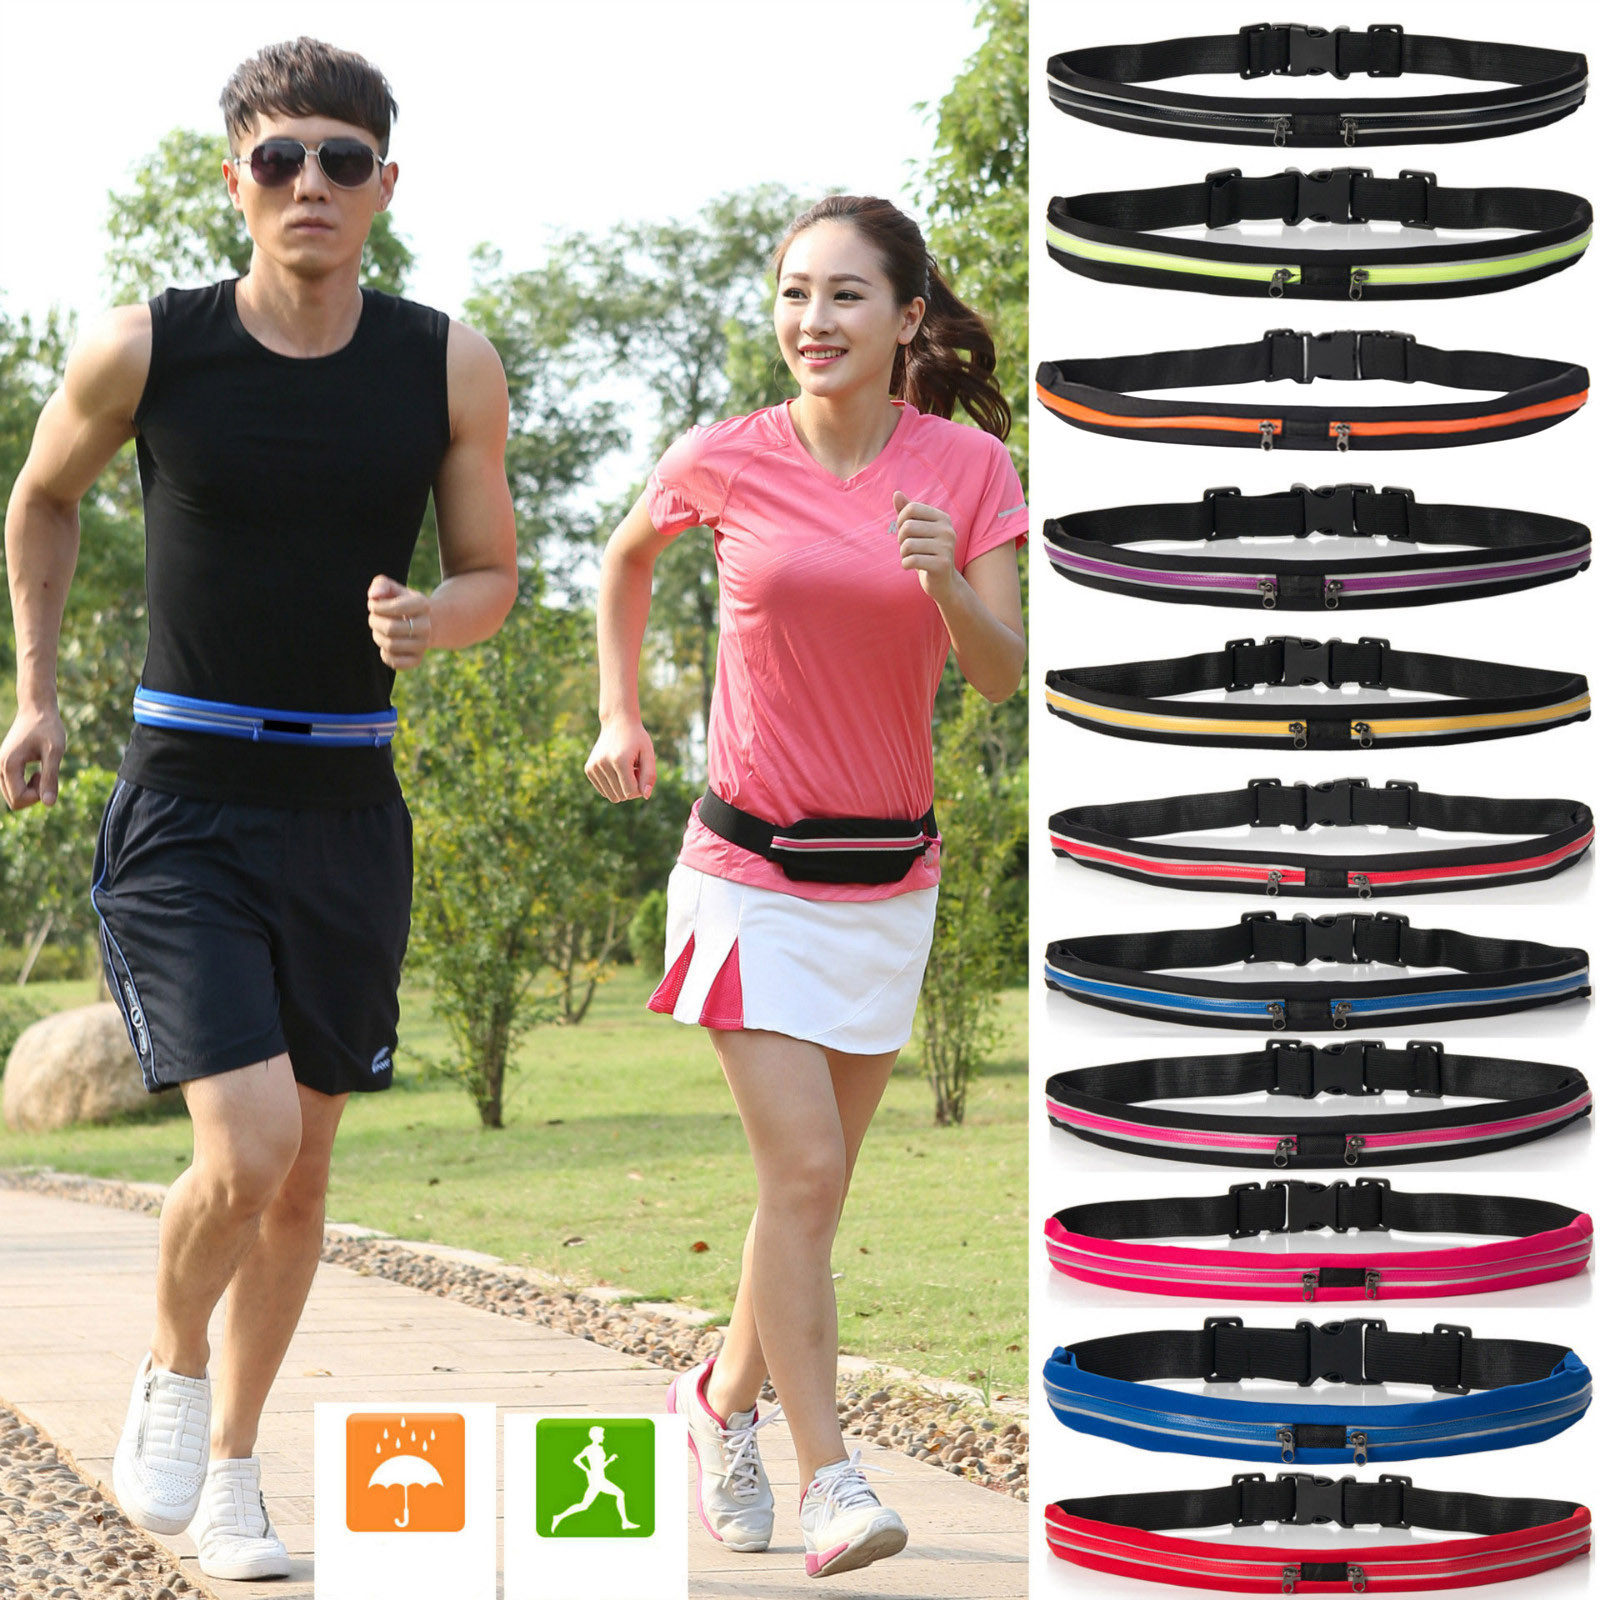 Waist Pack Unisex Fashion Outdoor Stretch Sports Belt Double Pocket Waterproof Phone Bag Belt Casual Small Bag For Traveling Run